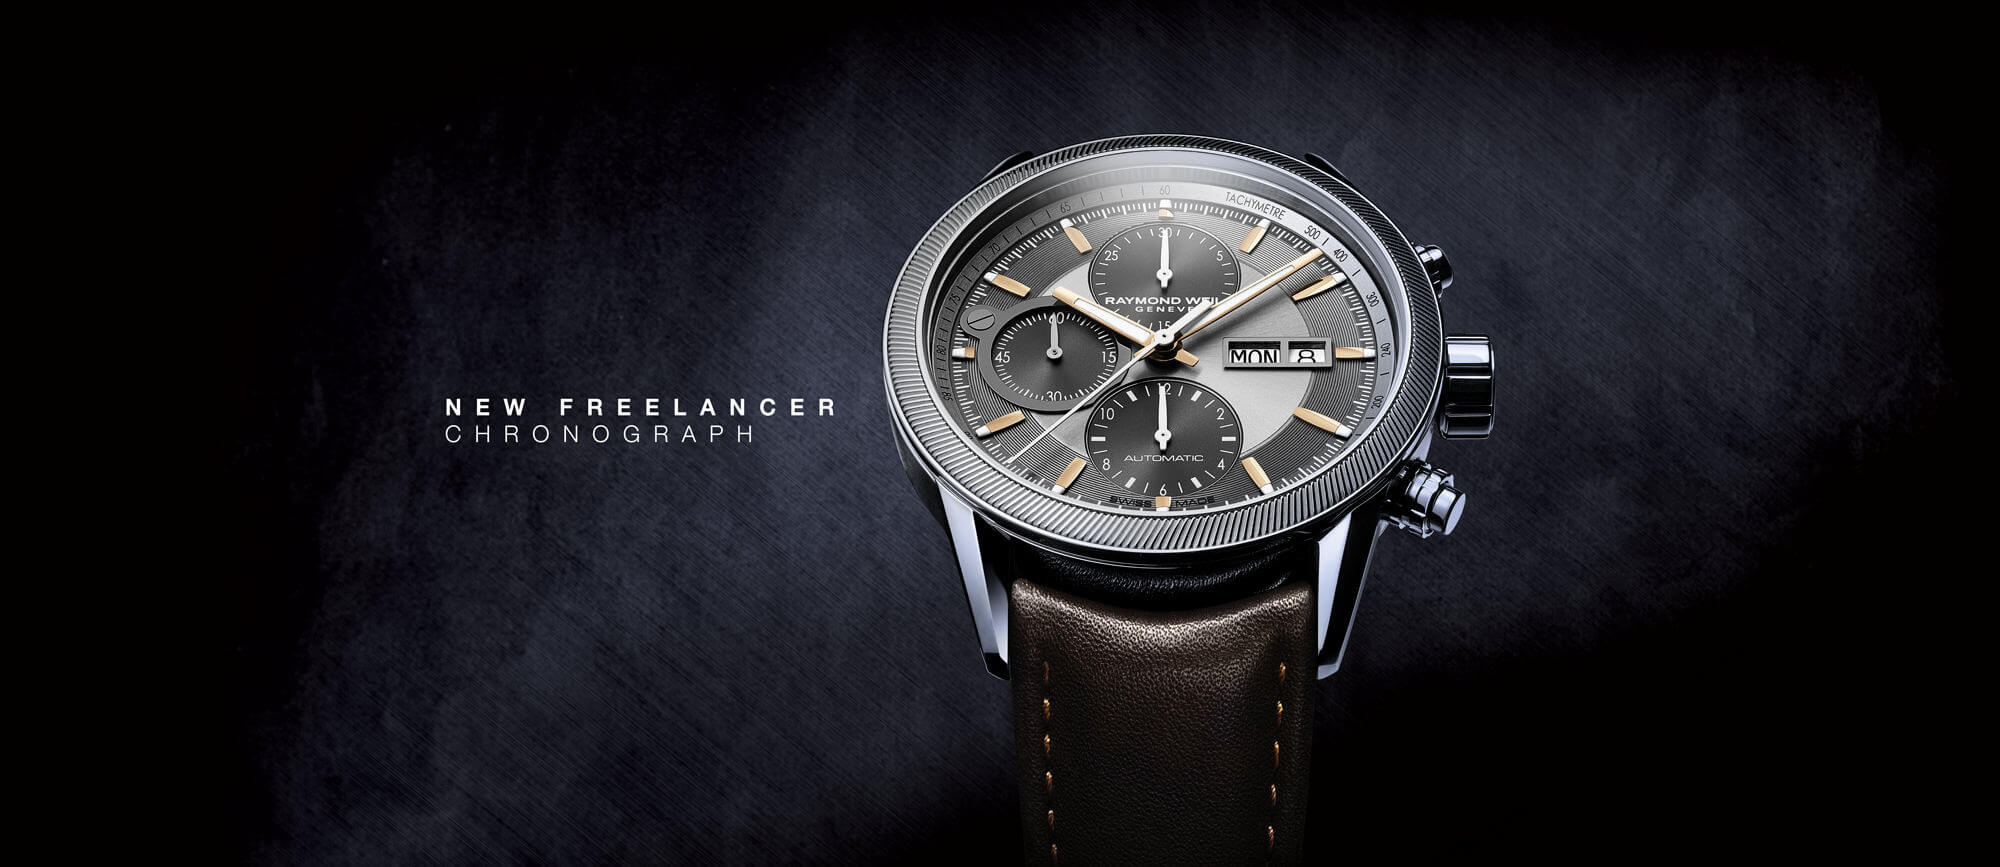 4e655f26f33d6 RAYMOND WEIL S.A. - Frequently Asked Questions